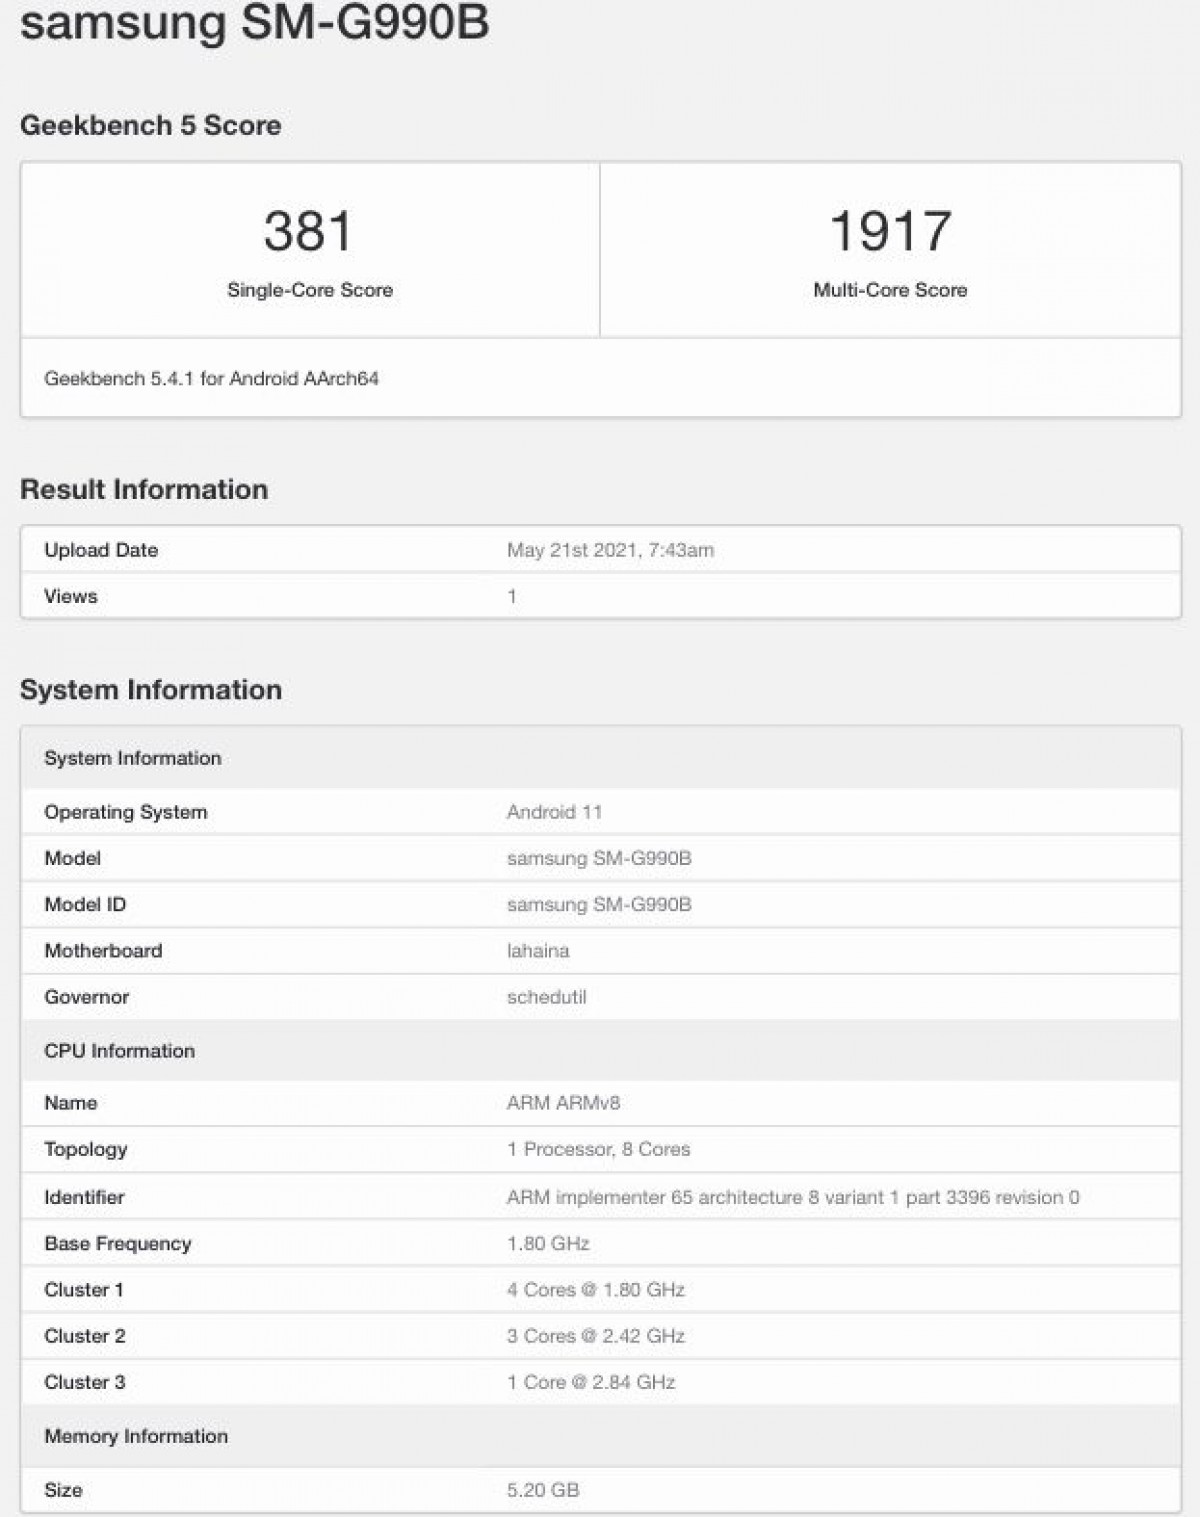 geekbench Android, geekbench, Samsung and Samsung Galaxy S21 FE